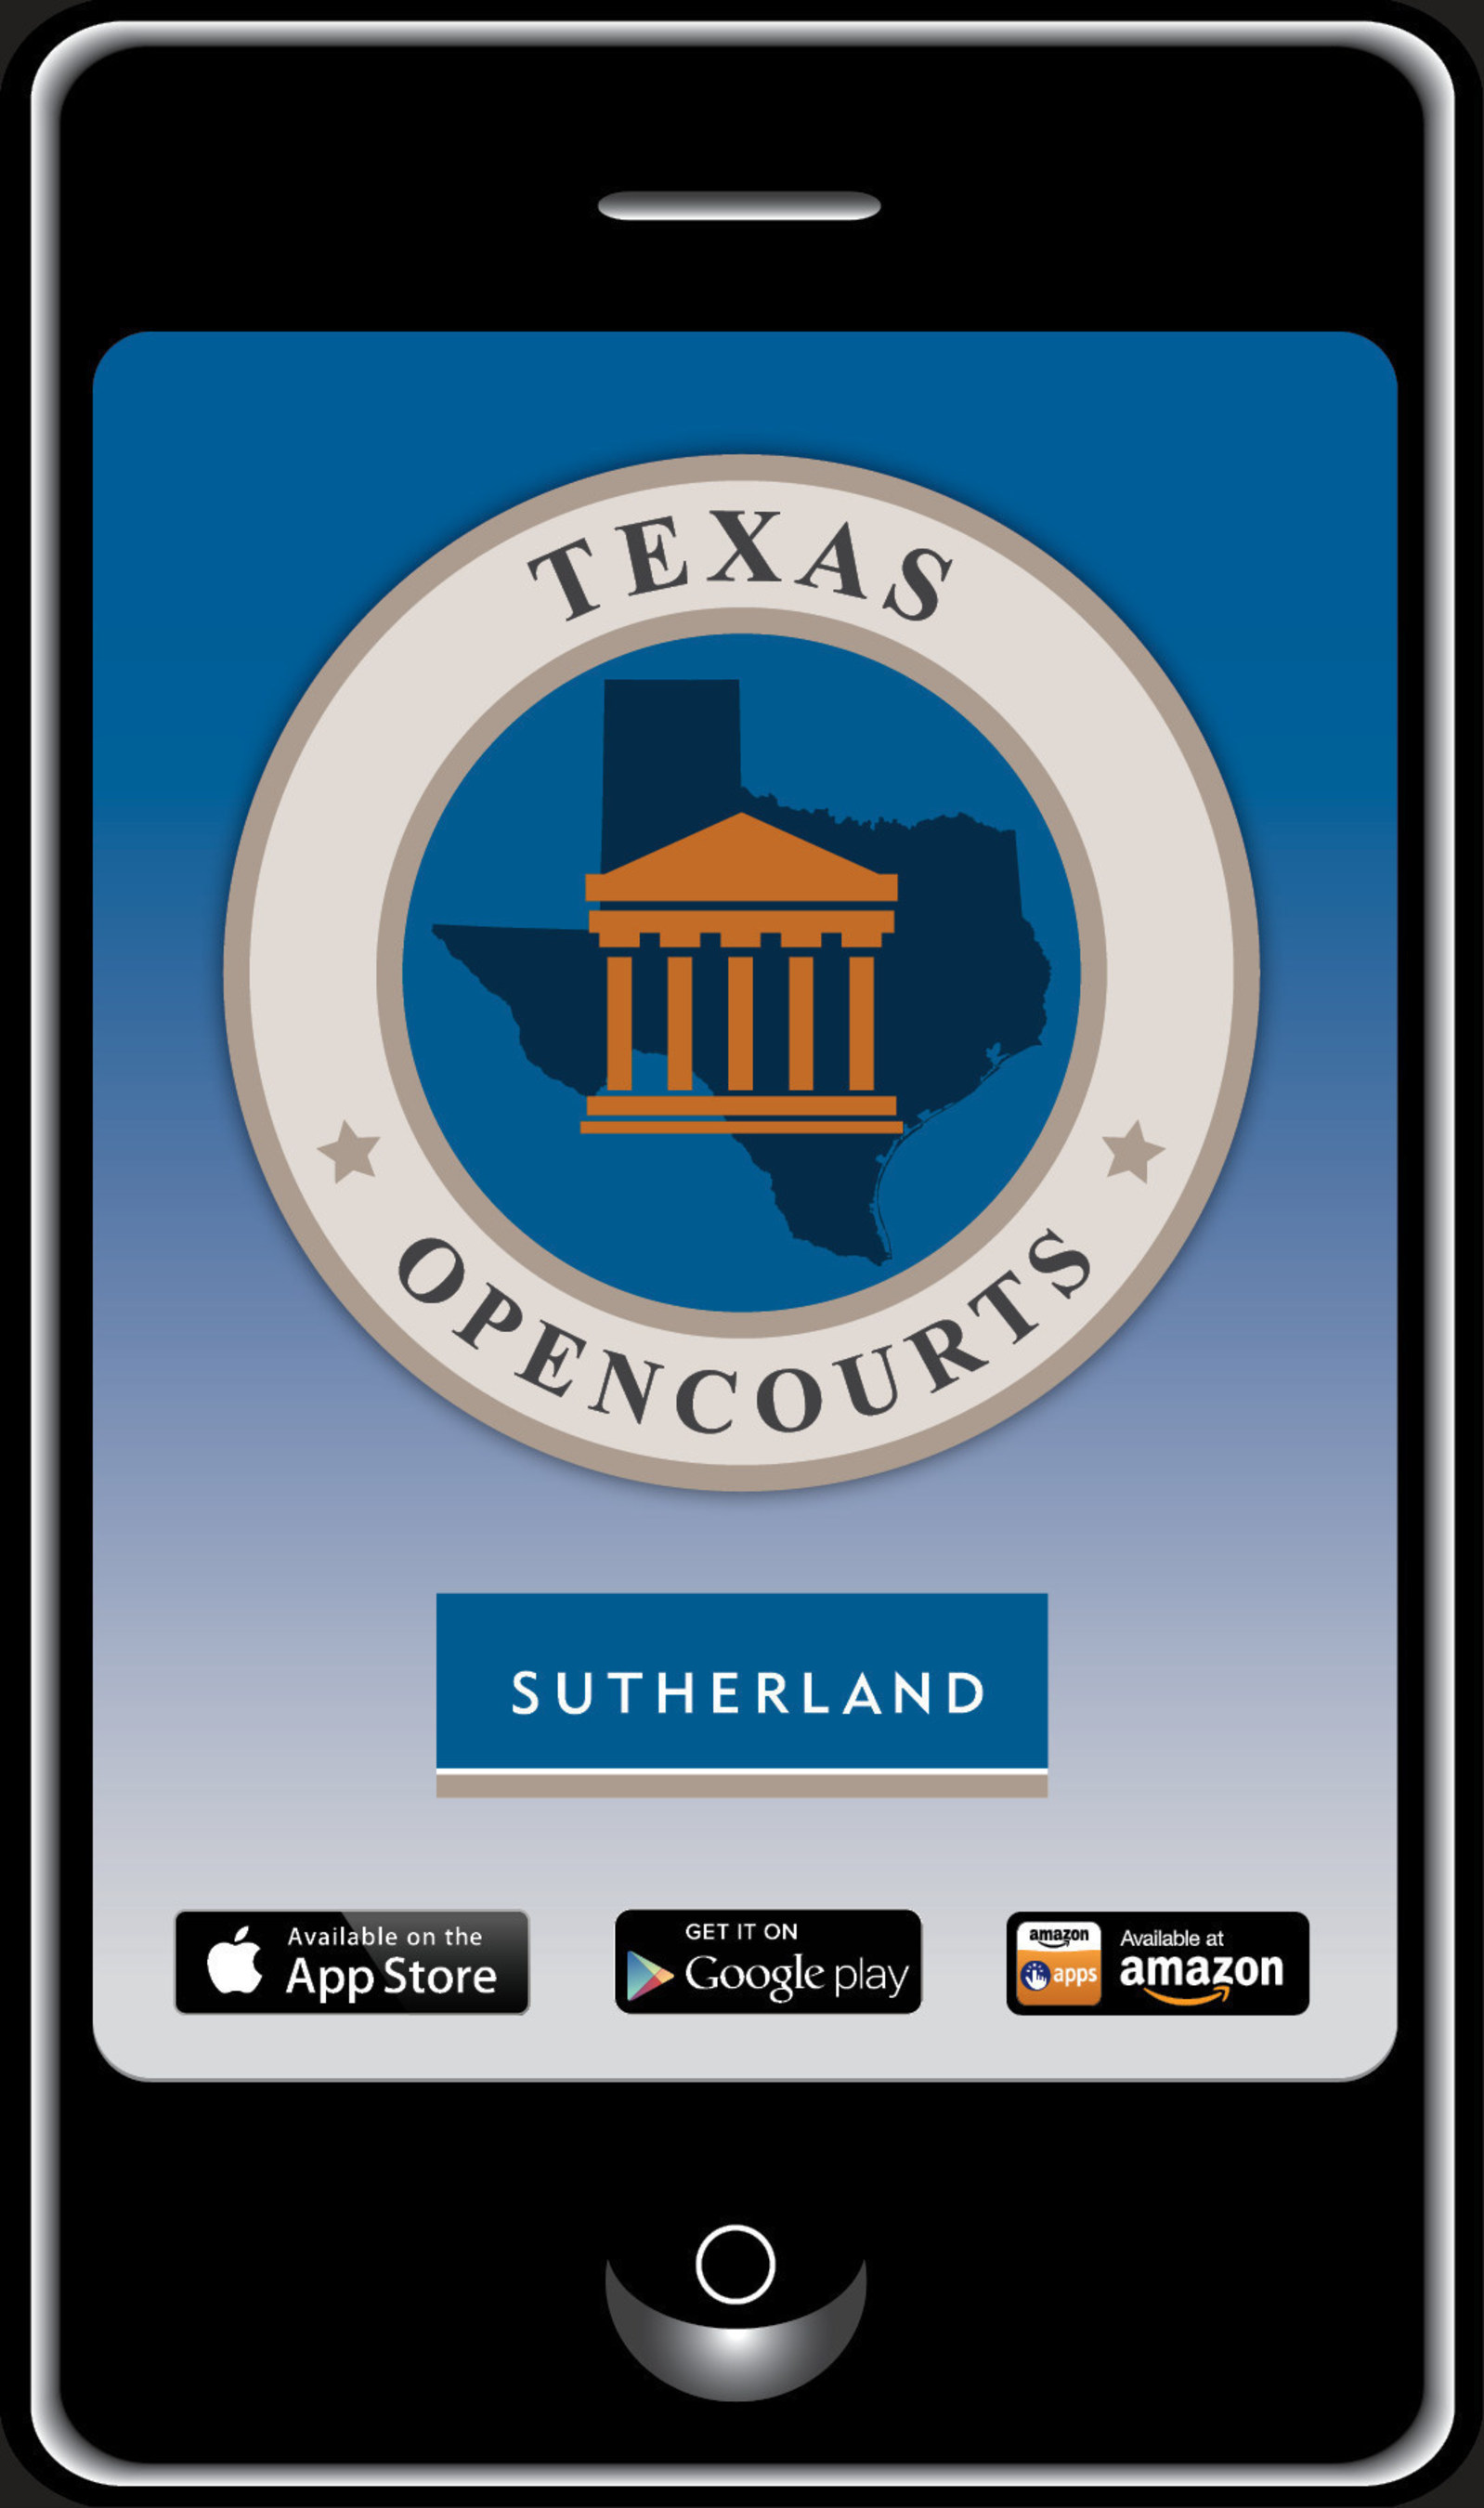 Sutherland Launches Texas openCourts Mobile App